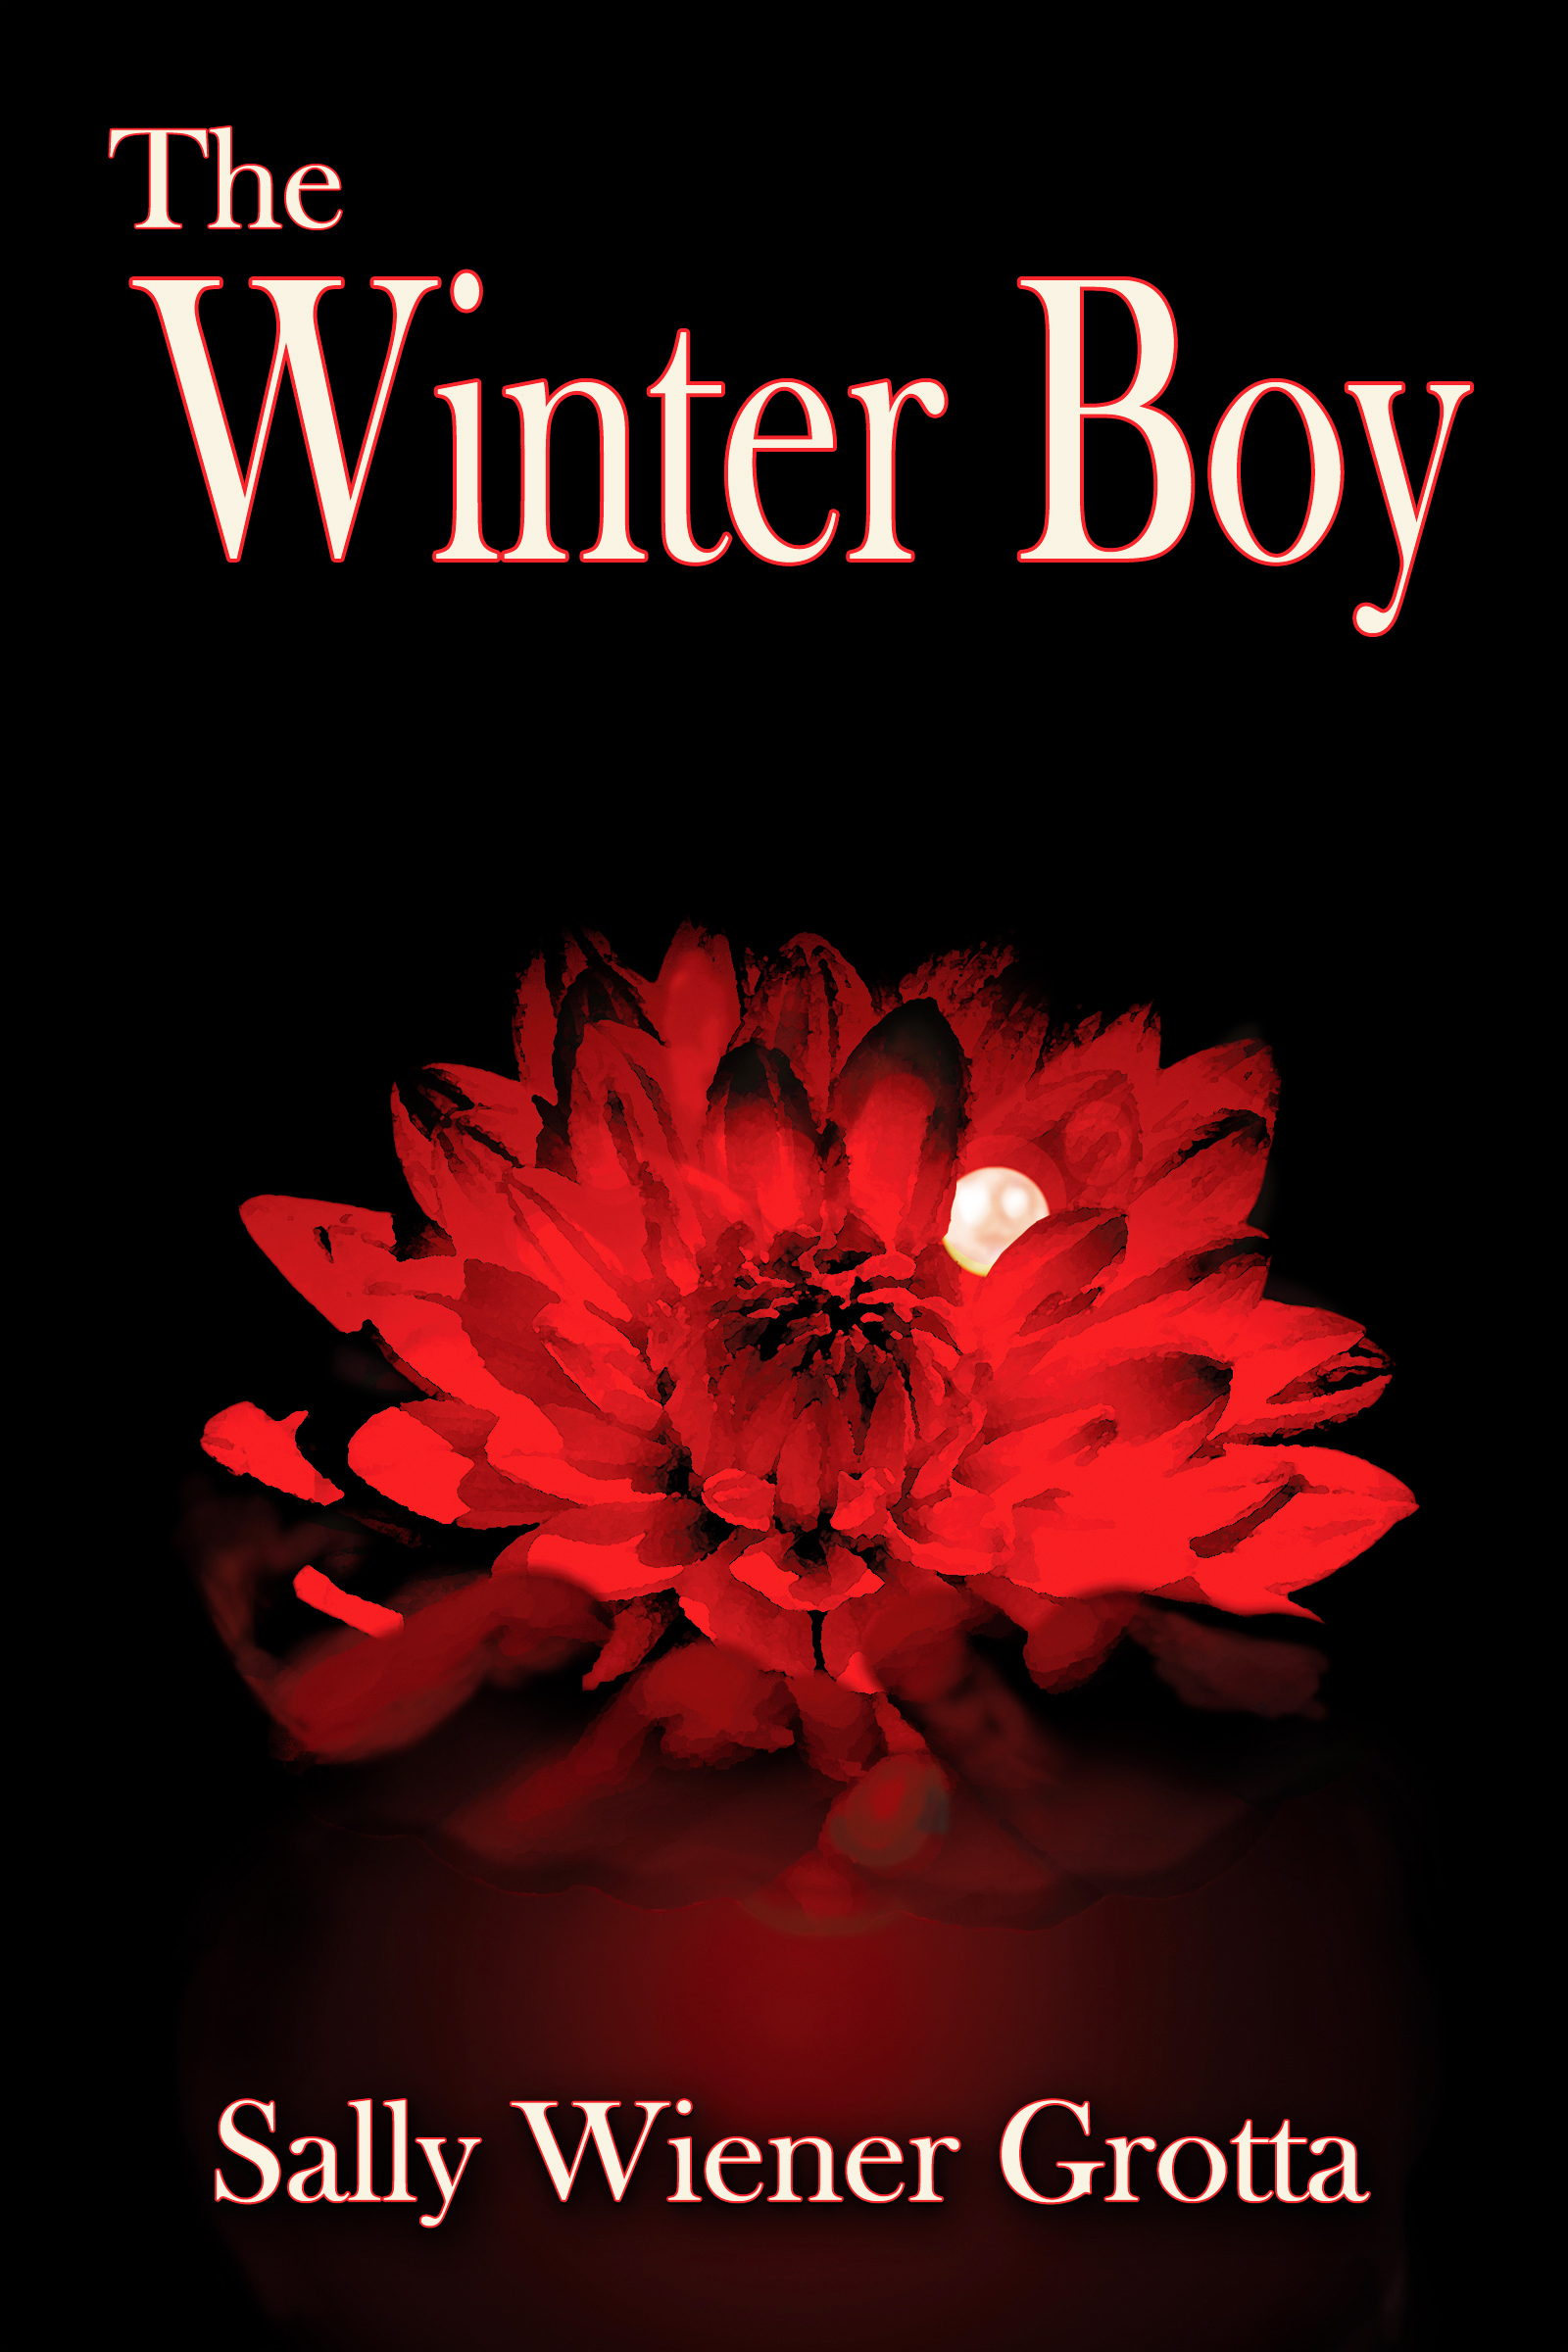 The Winter Boy by Sally Wiener Grotta